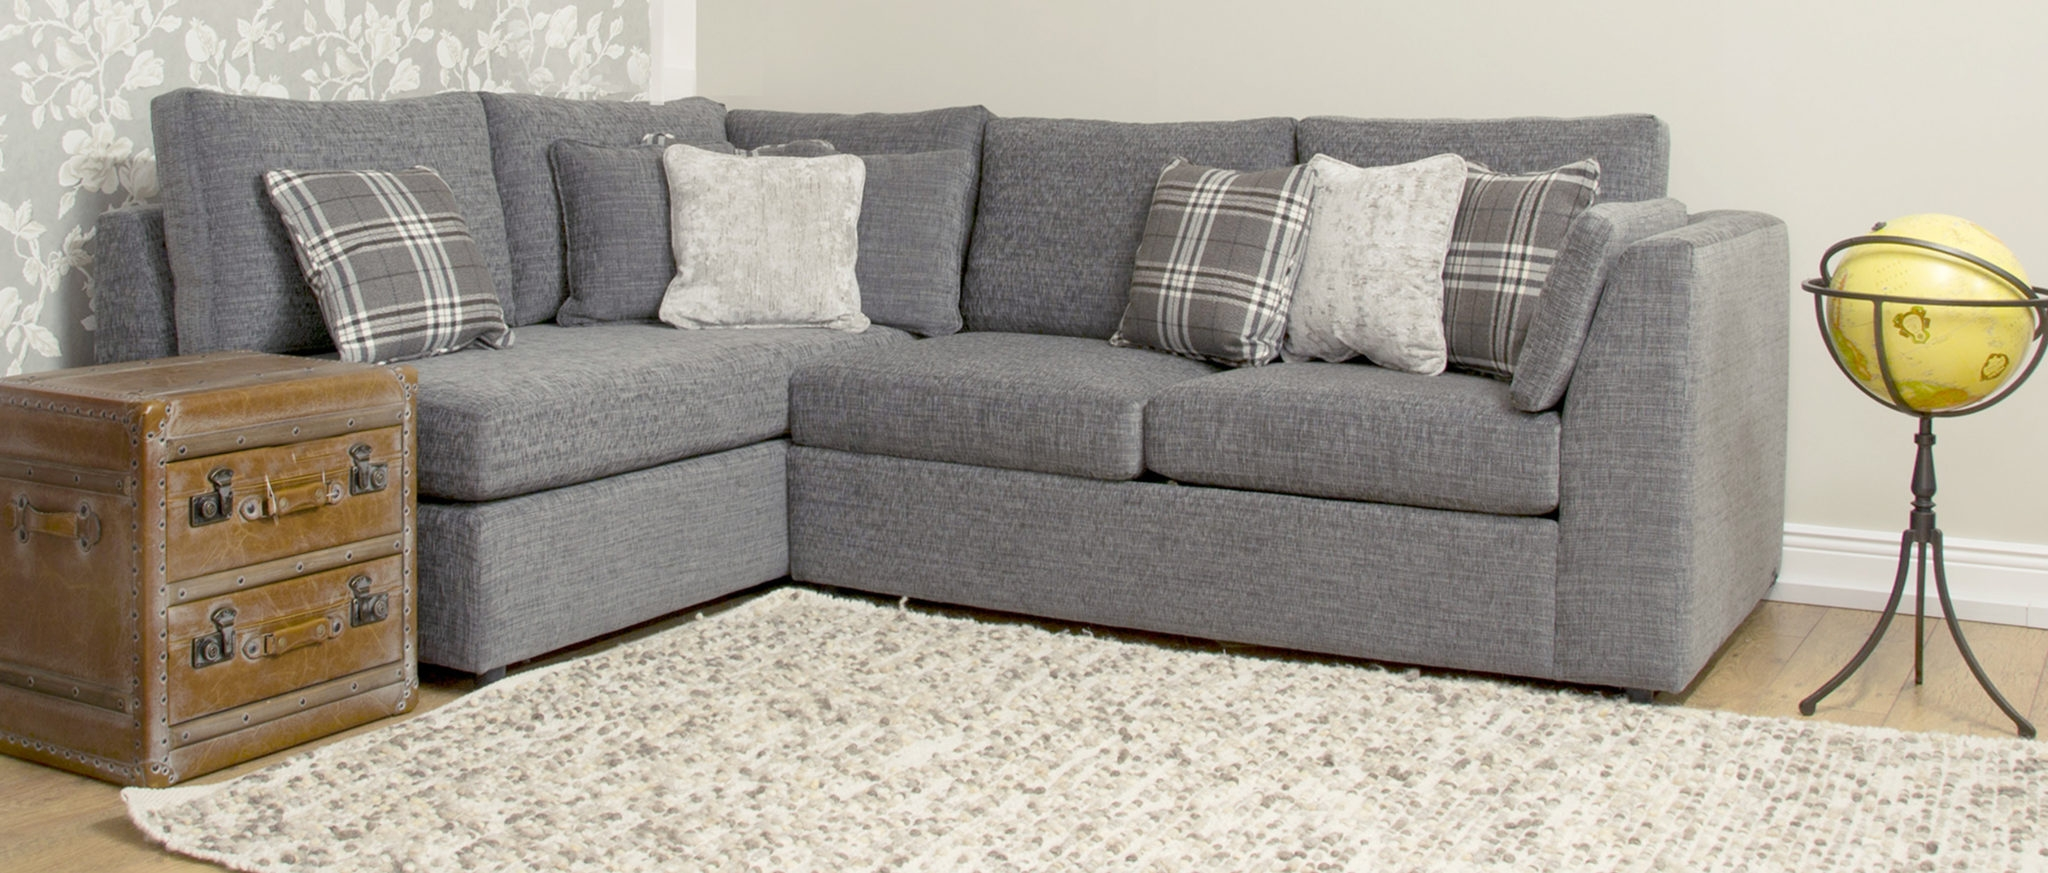 Klaus Corner Sofabed Corner Groups Range Finline Furniture With Bespoke Corner Sofa Beds (Image 12 of 15)